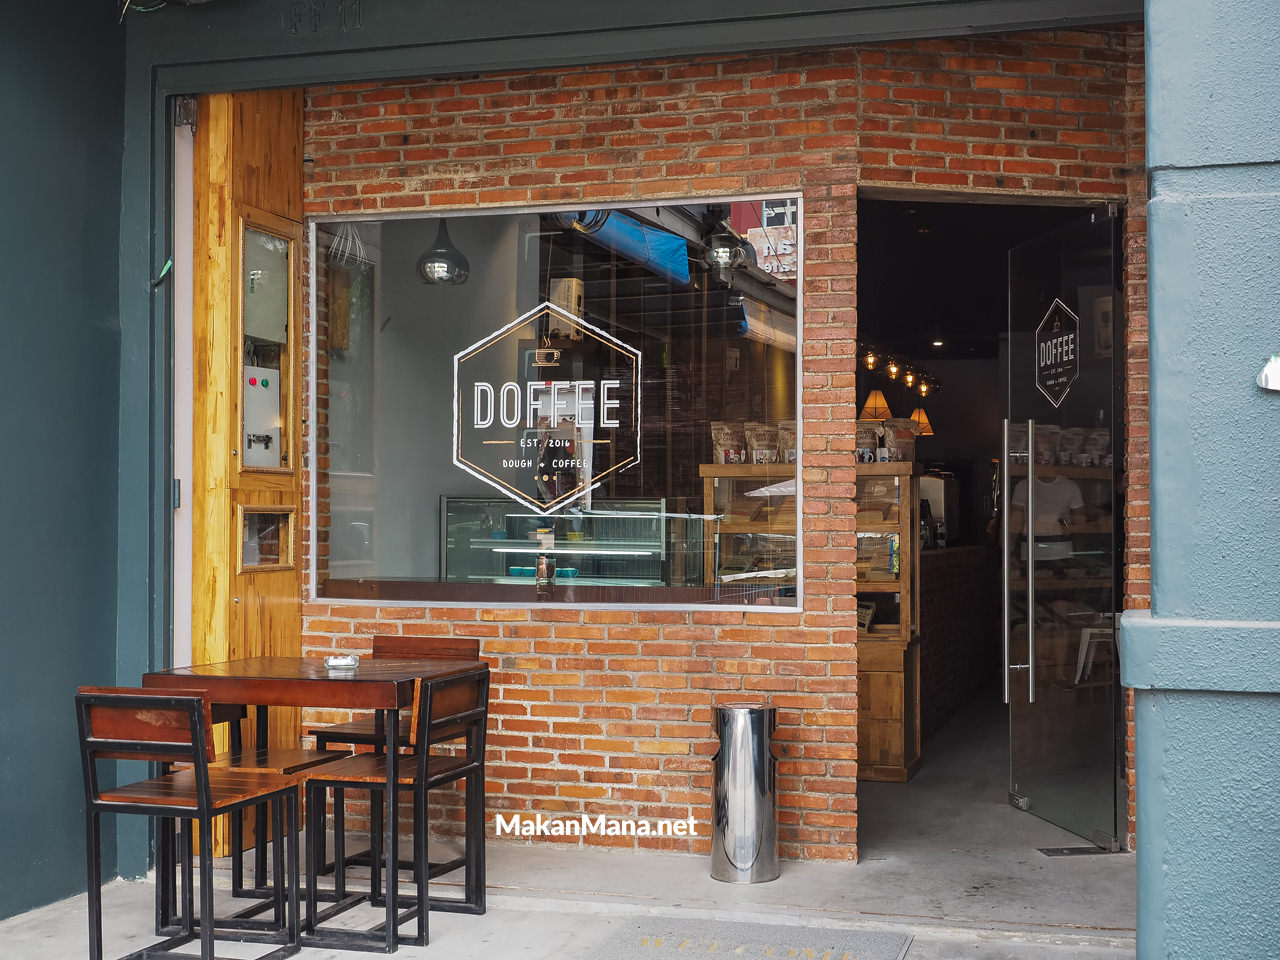 doffee dough coffee